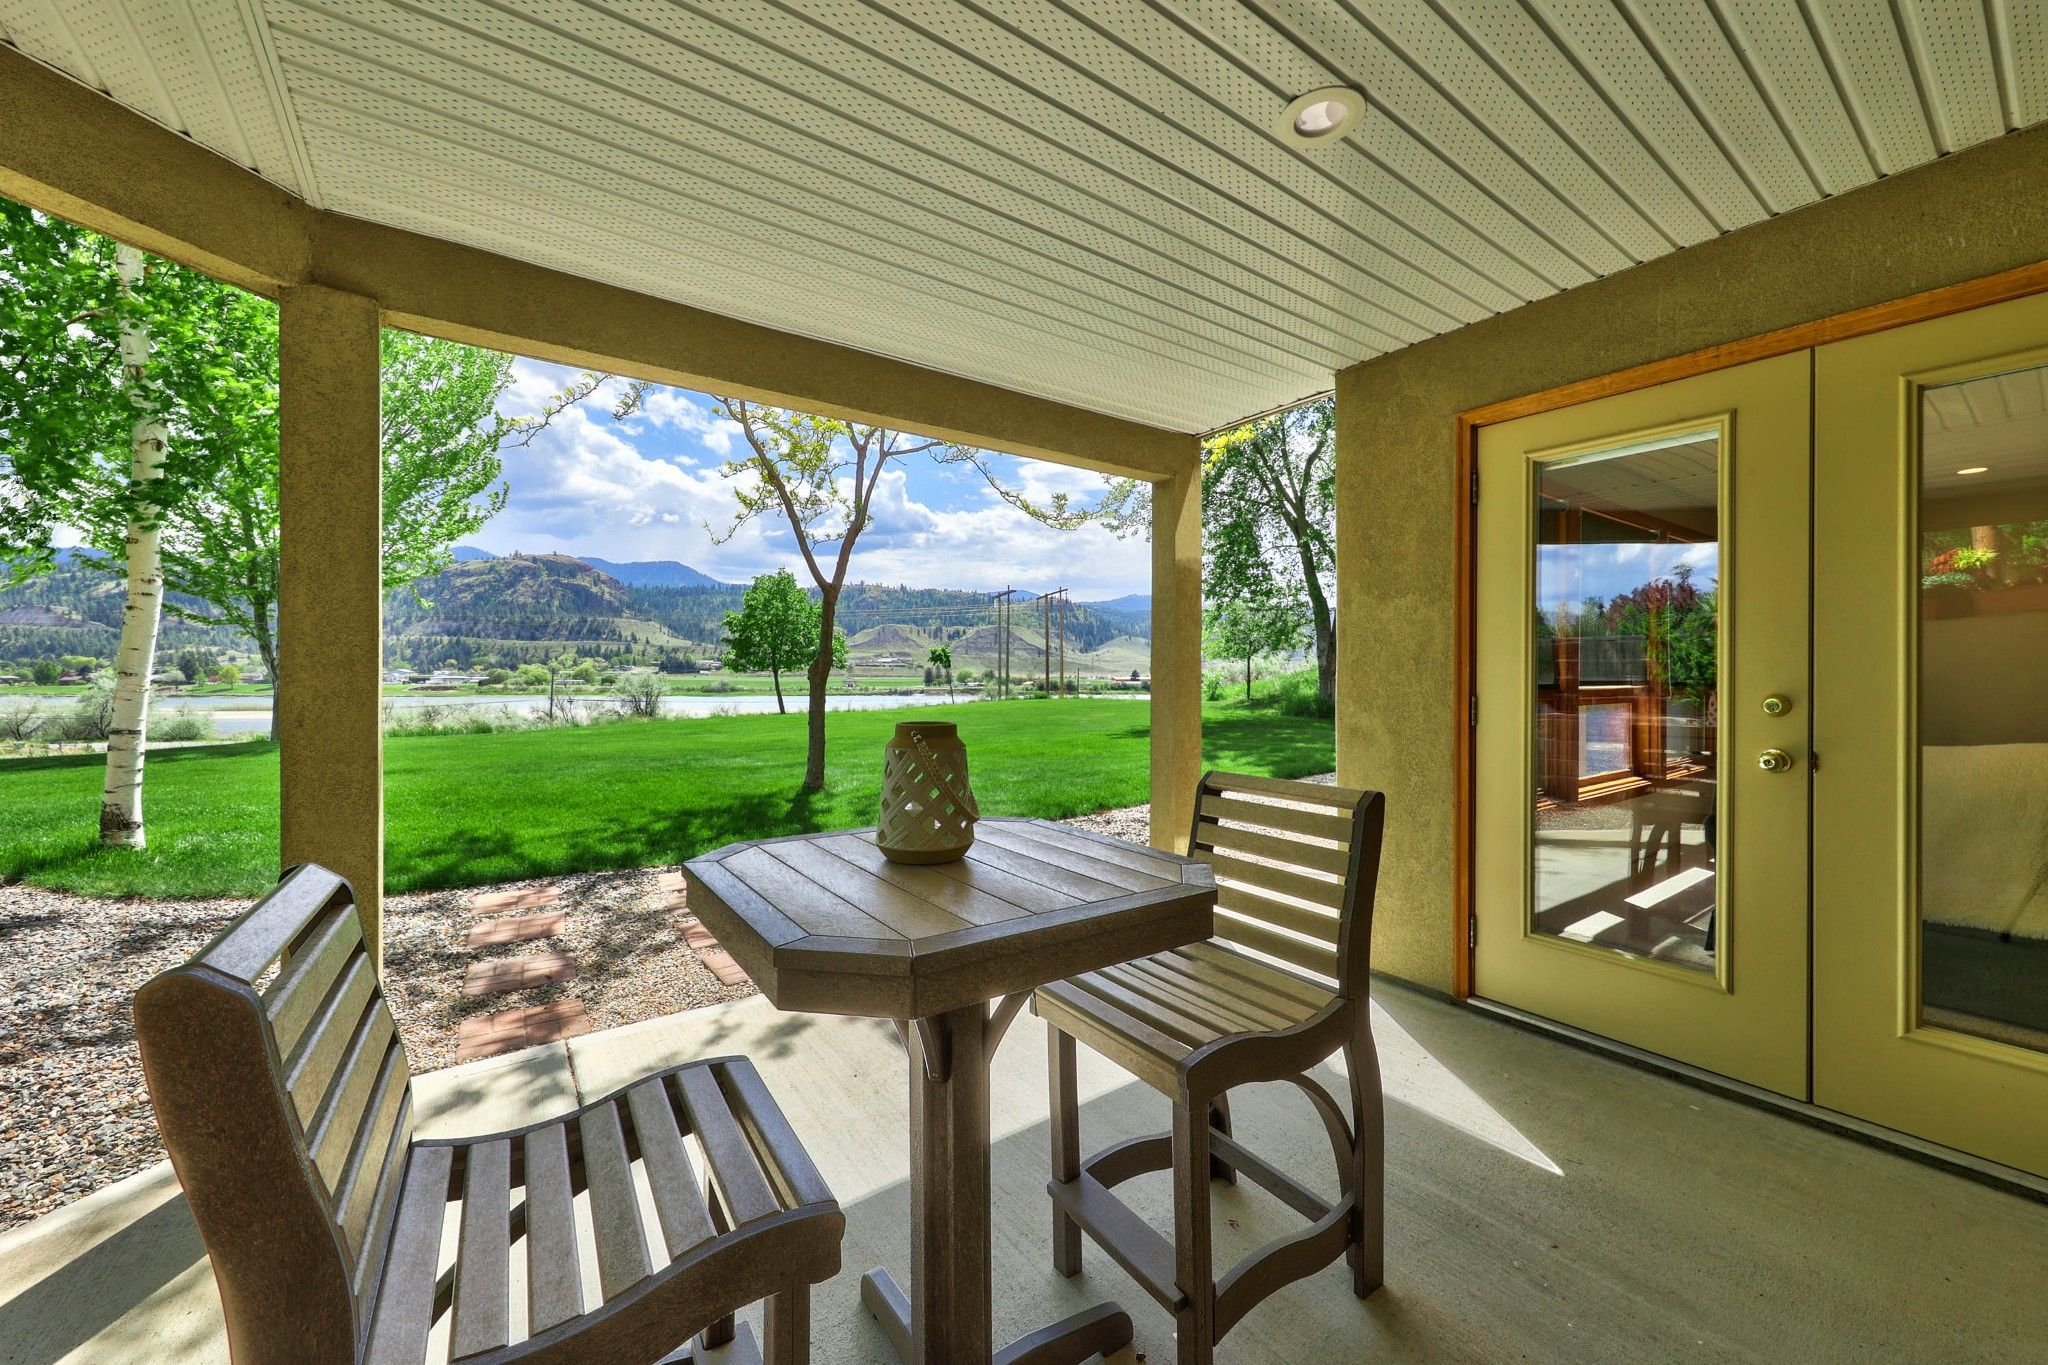 Photo 17: Photos: 3299 E Shuswap Road in Kamloops: South Thompson Valley House for sale : MLS®# 162162